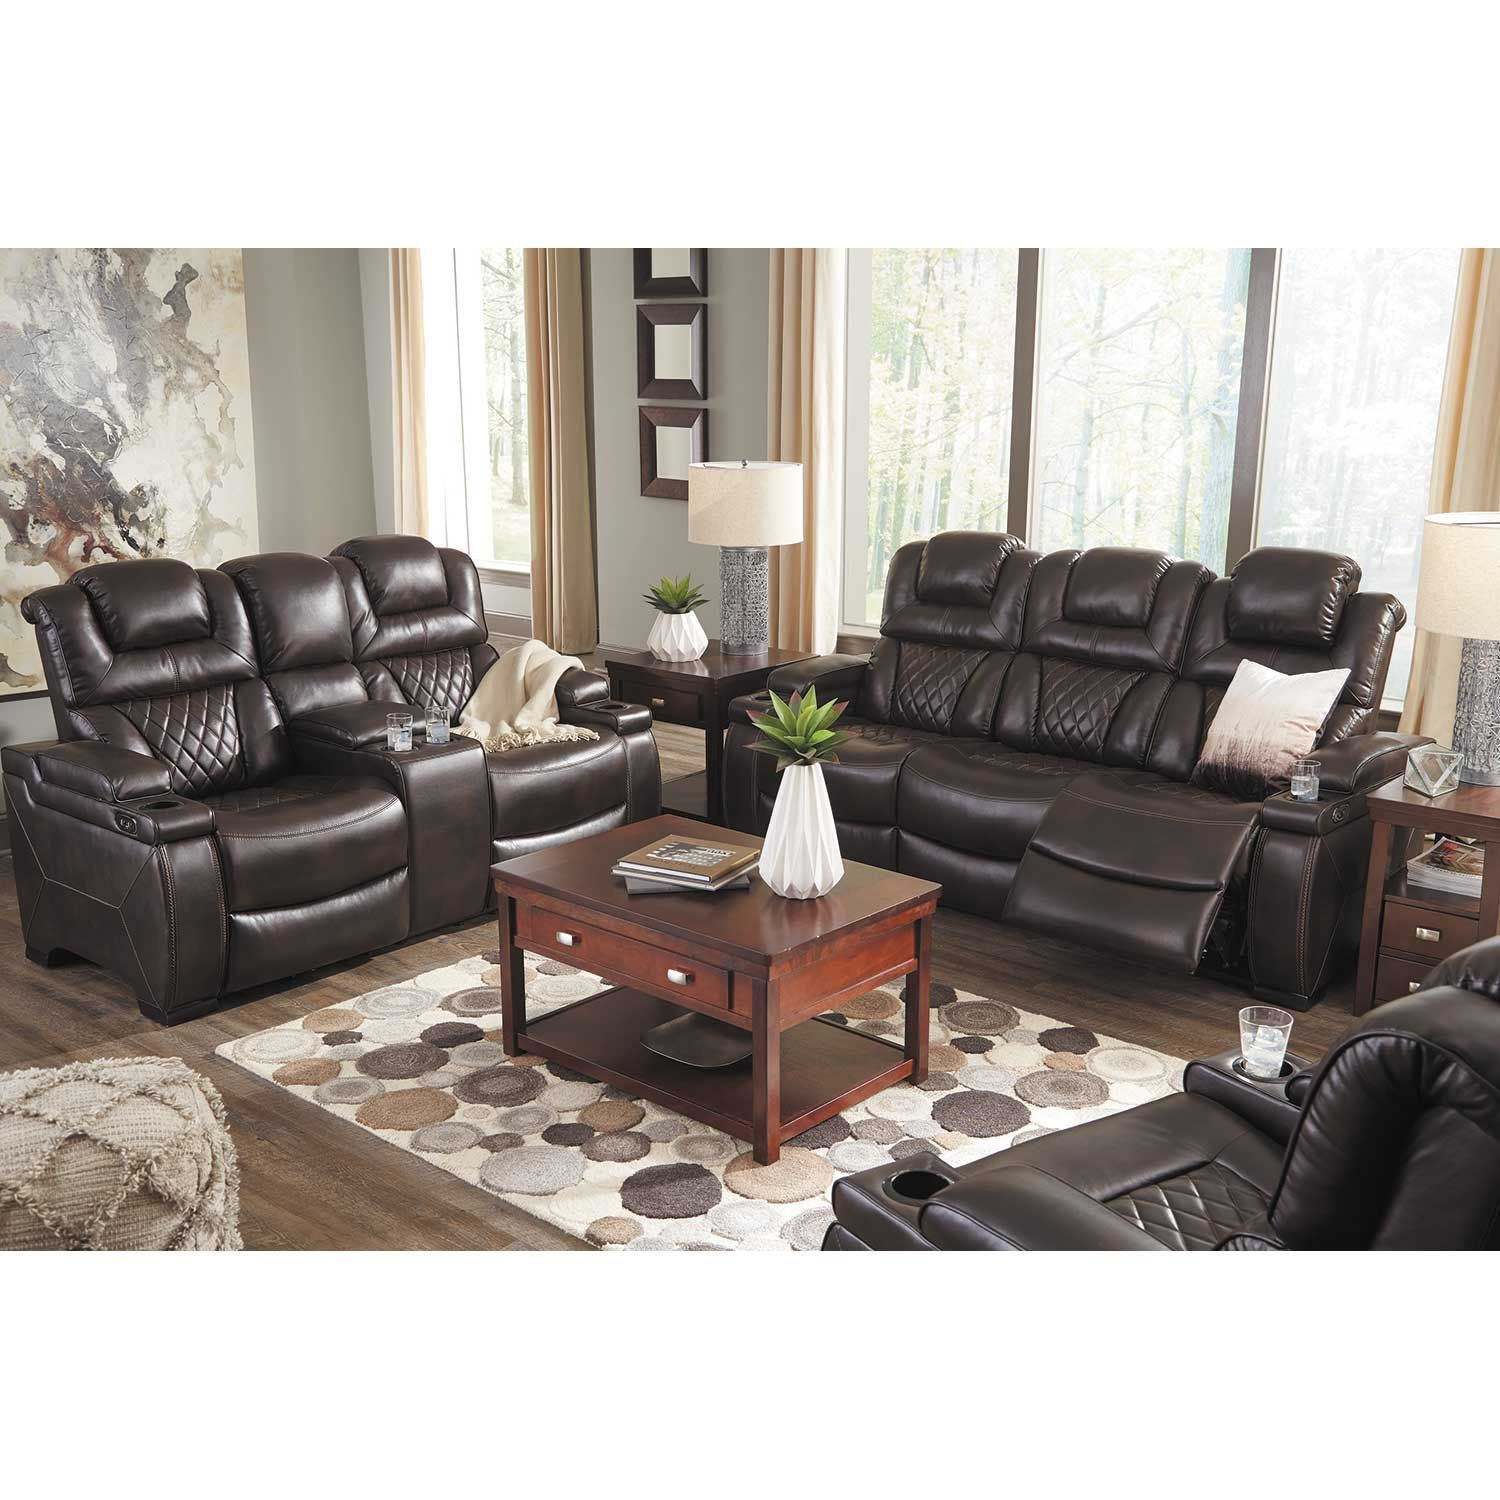 Ashley Furtniture: Warnerton Power Reclining Sofa With Drop Table